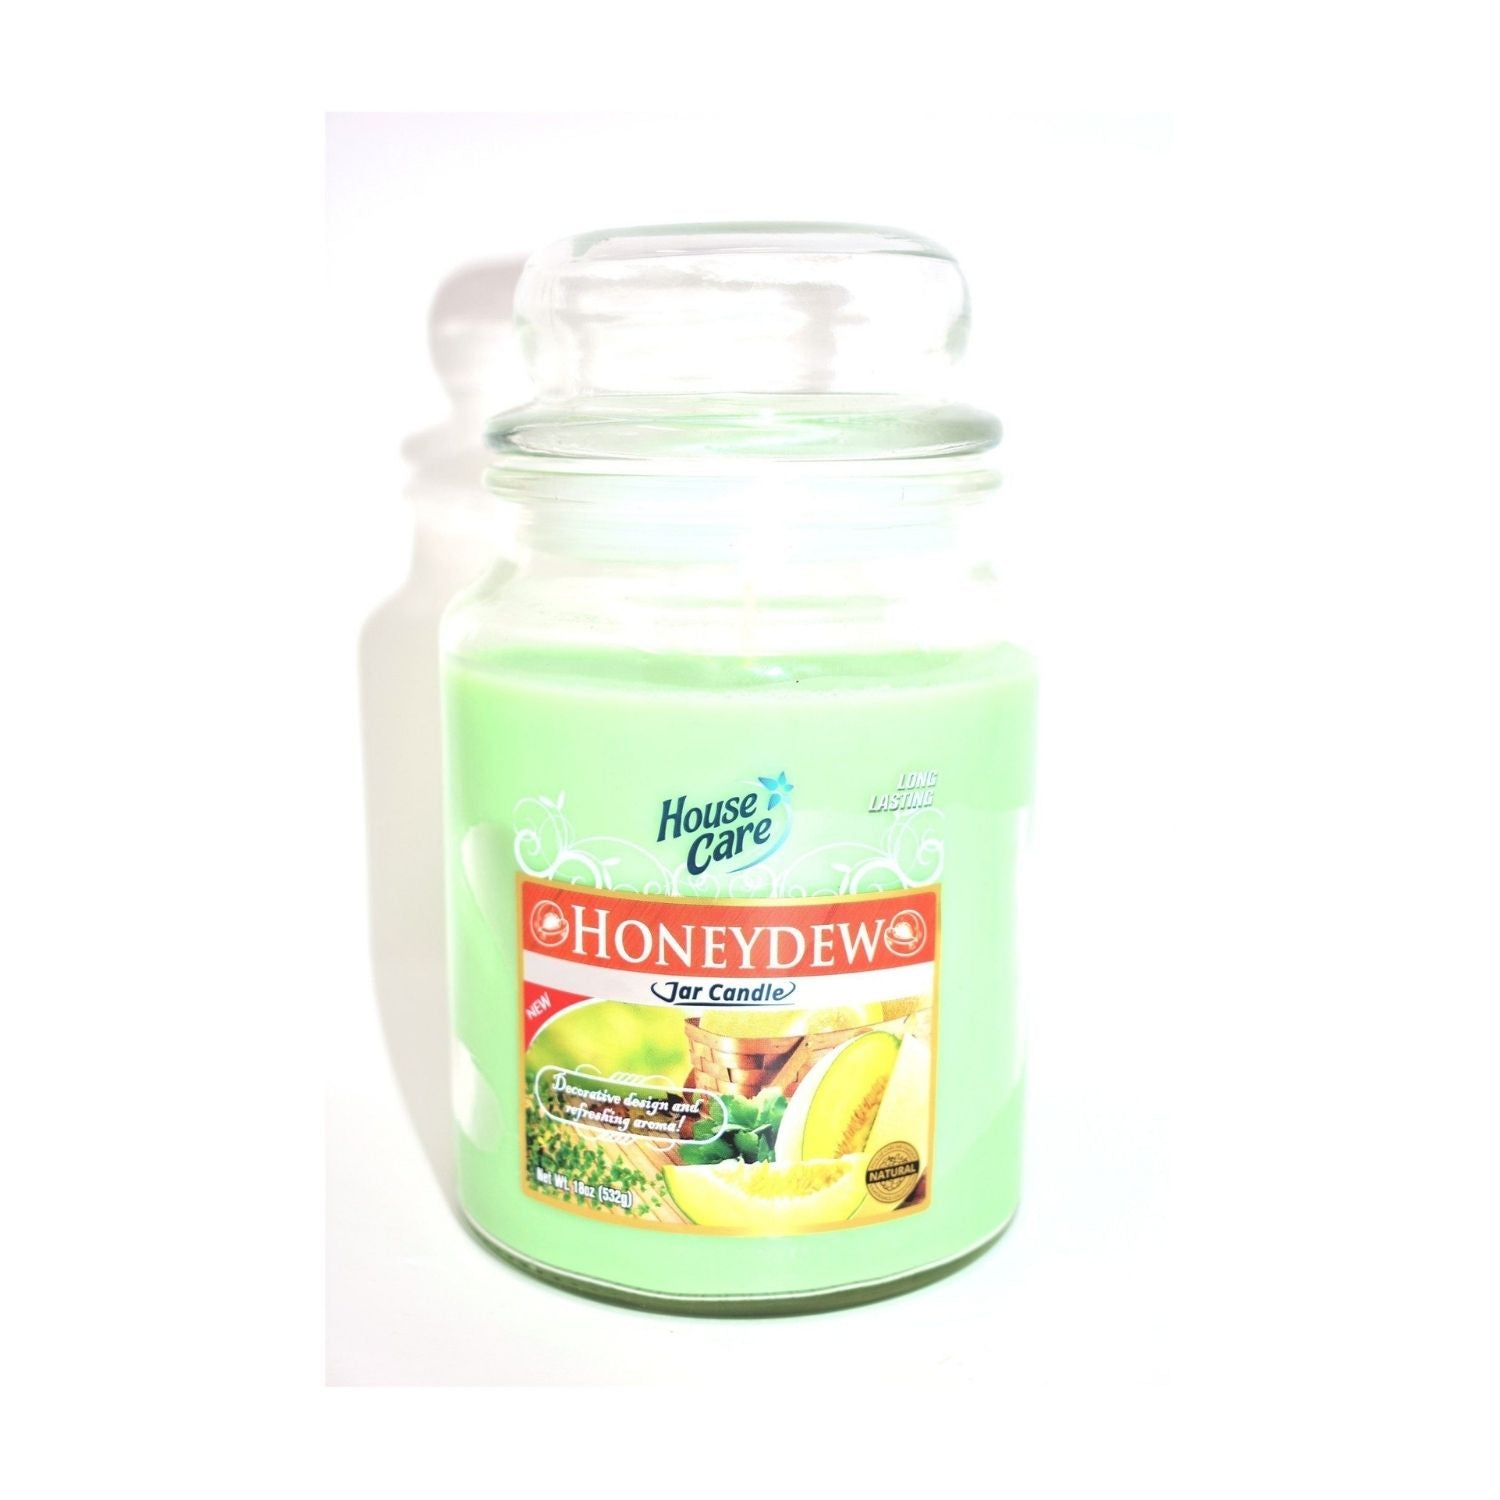 House Care Honeydew Jar Candle